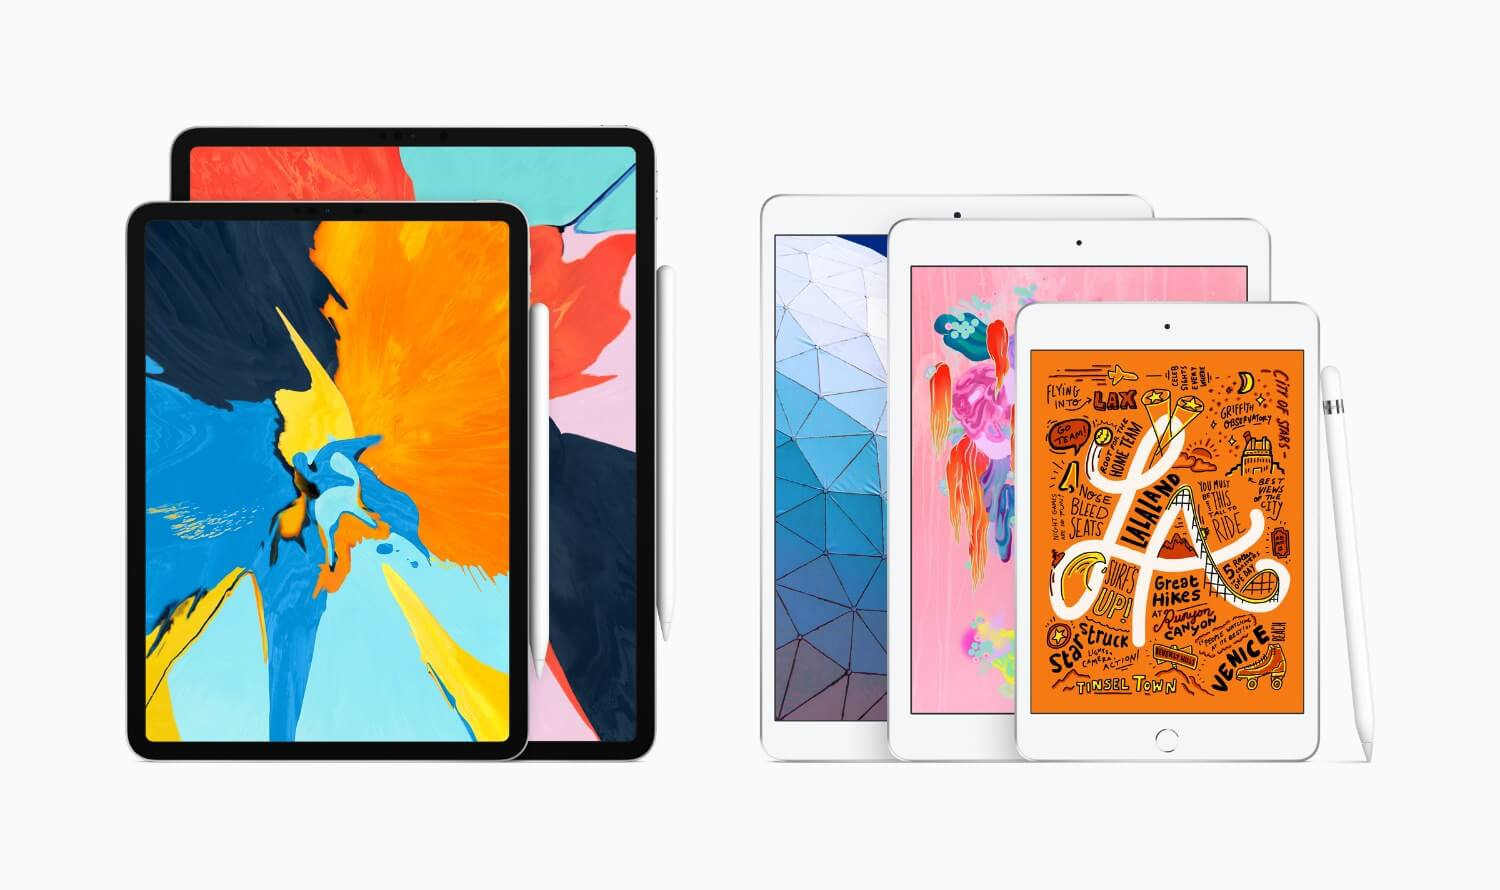 10.5-inch iPad Pro killed off by new iPad Air